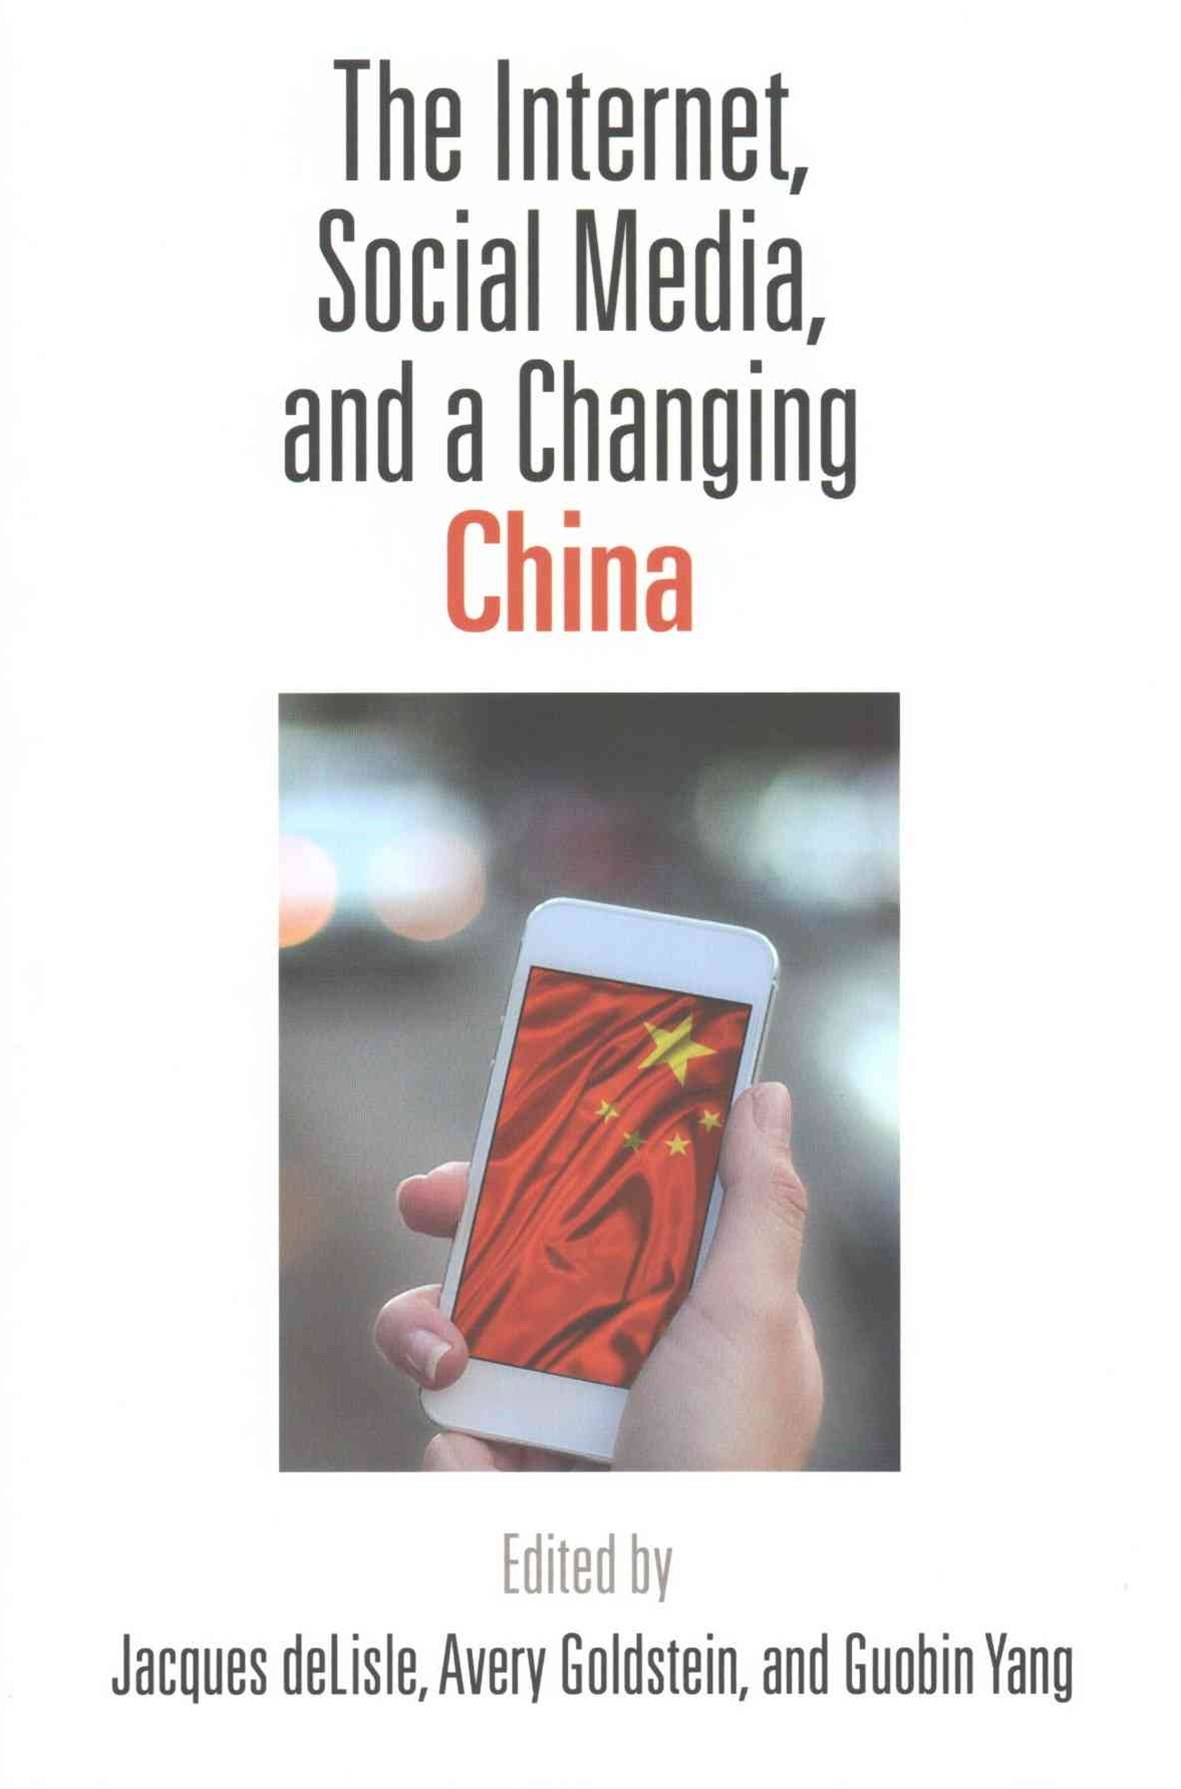 Internet, Social Media, and a Changing China